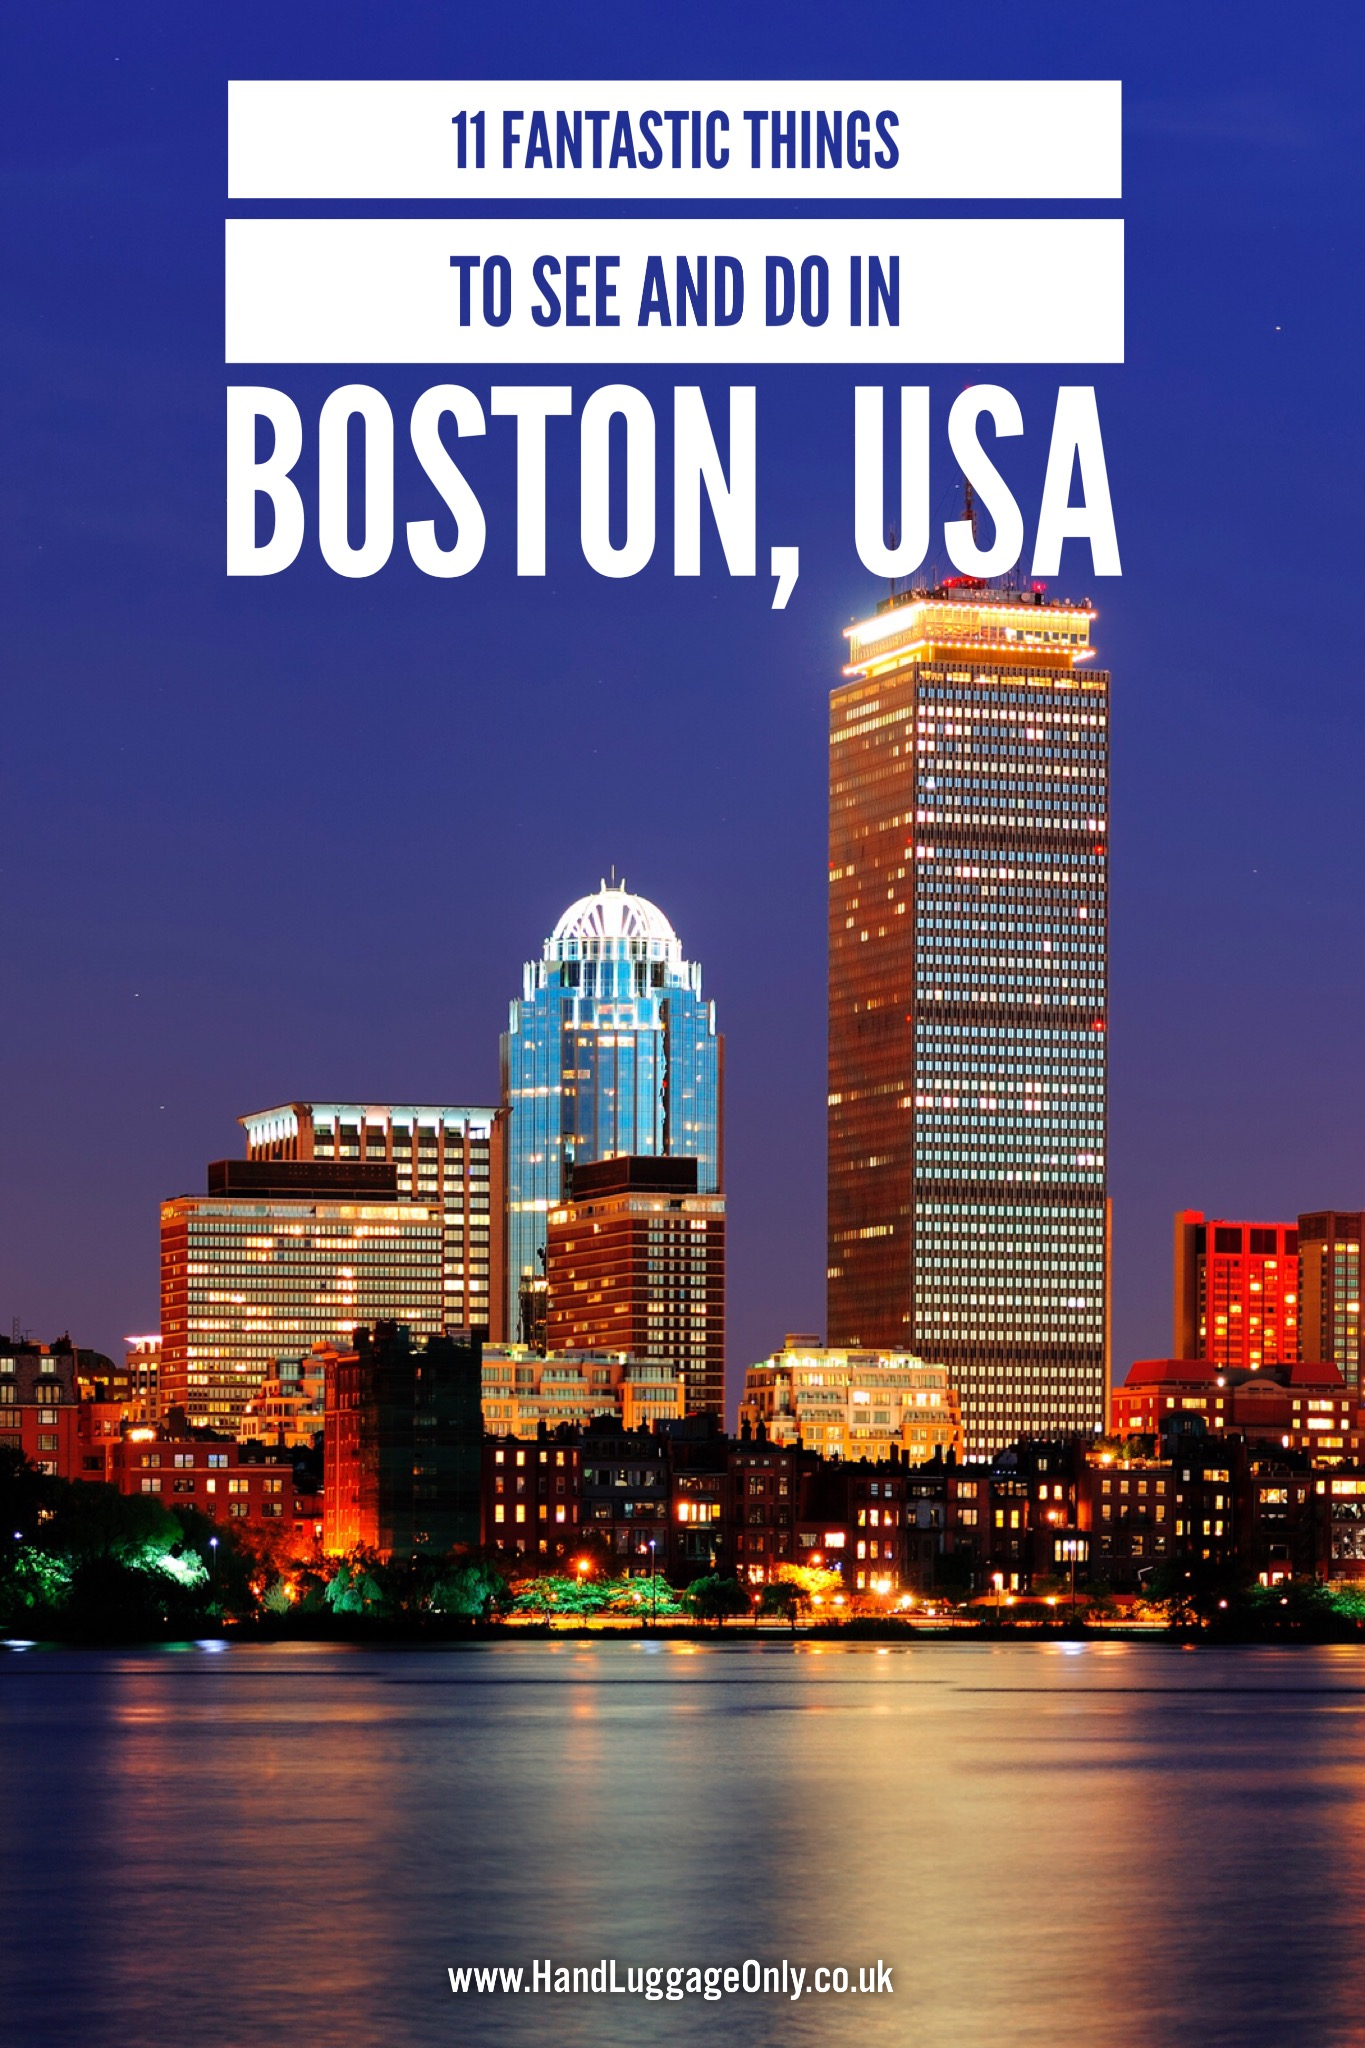 11 Fantastic Things To Do And See In Boston, USA (2)